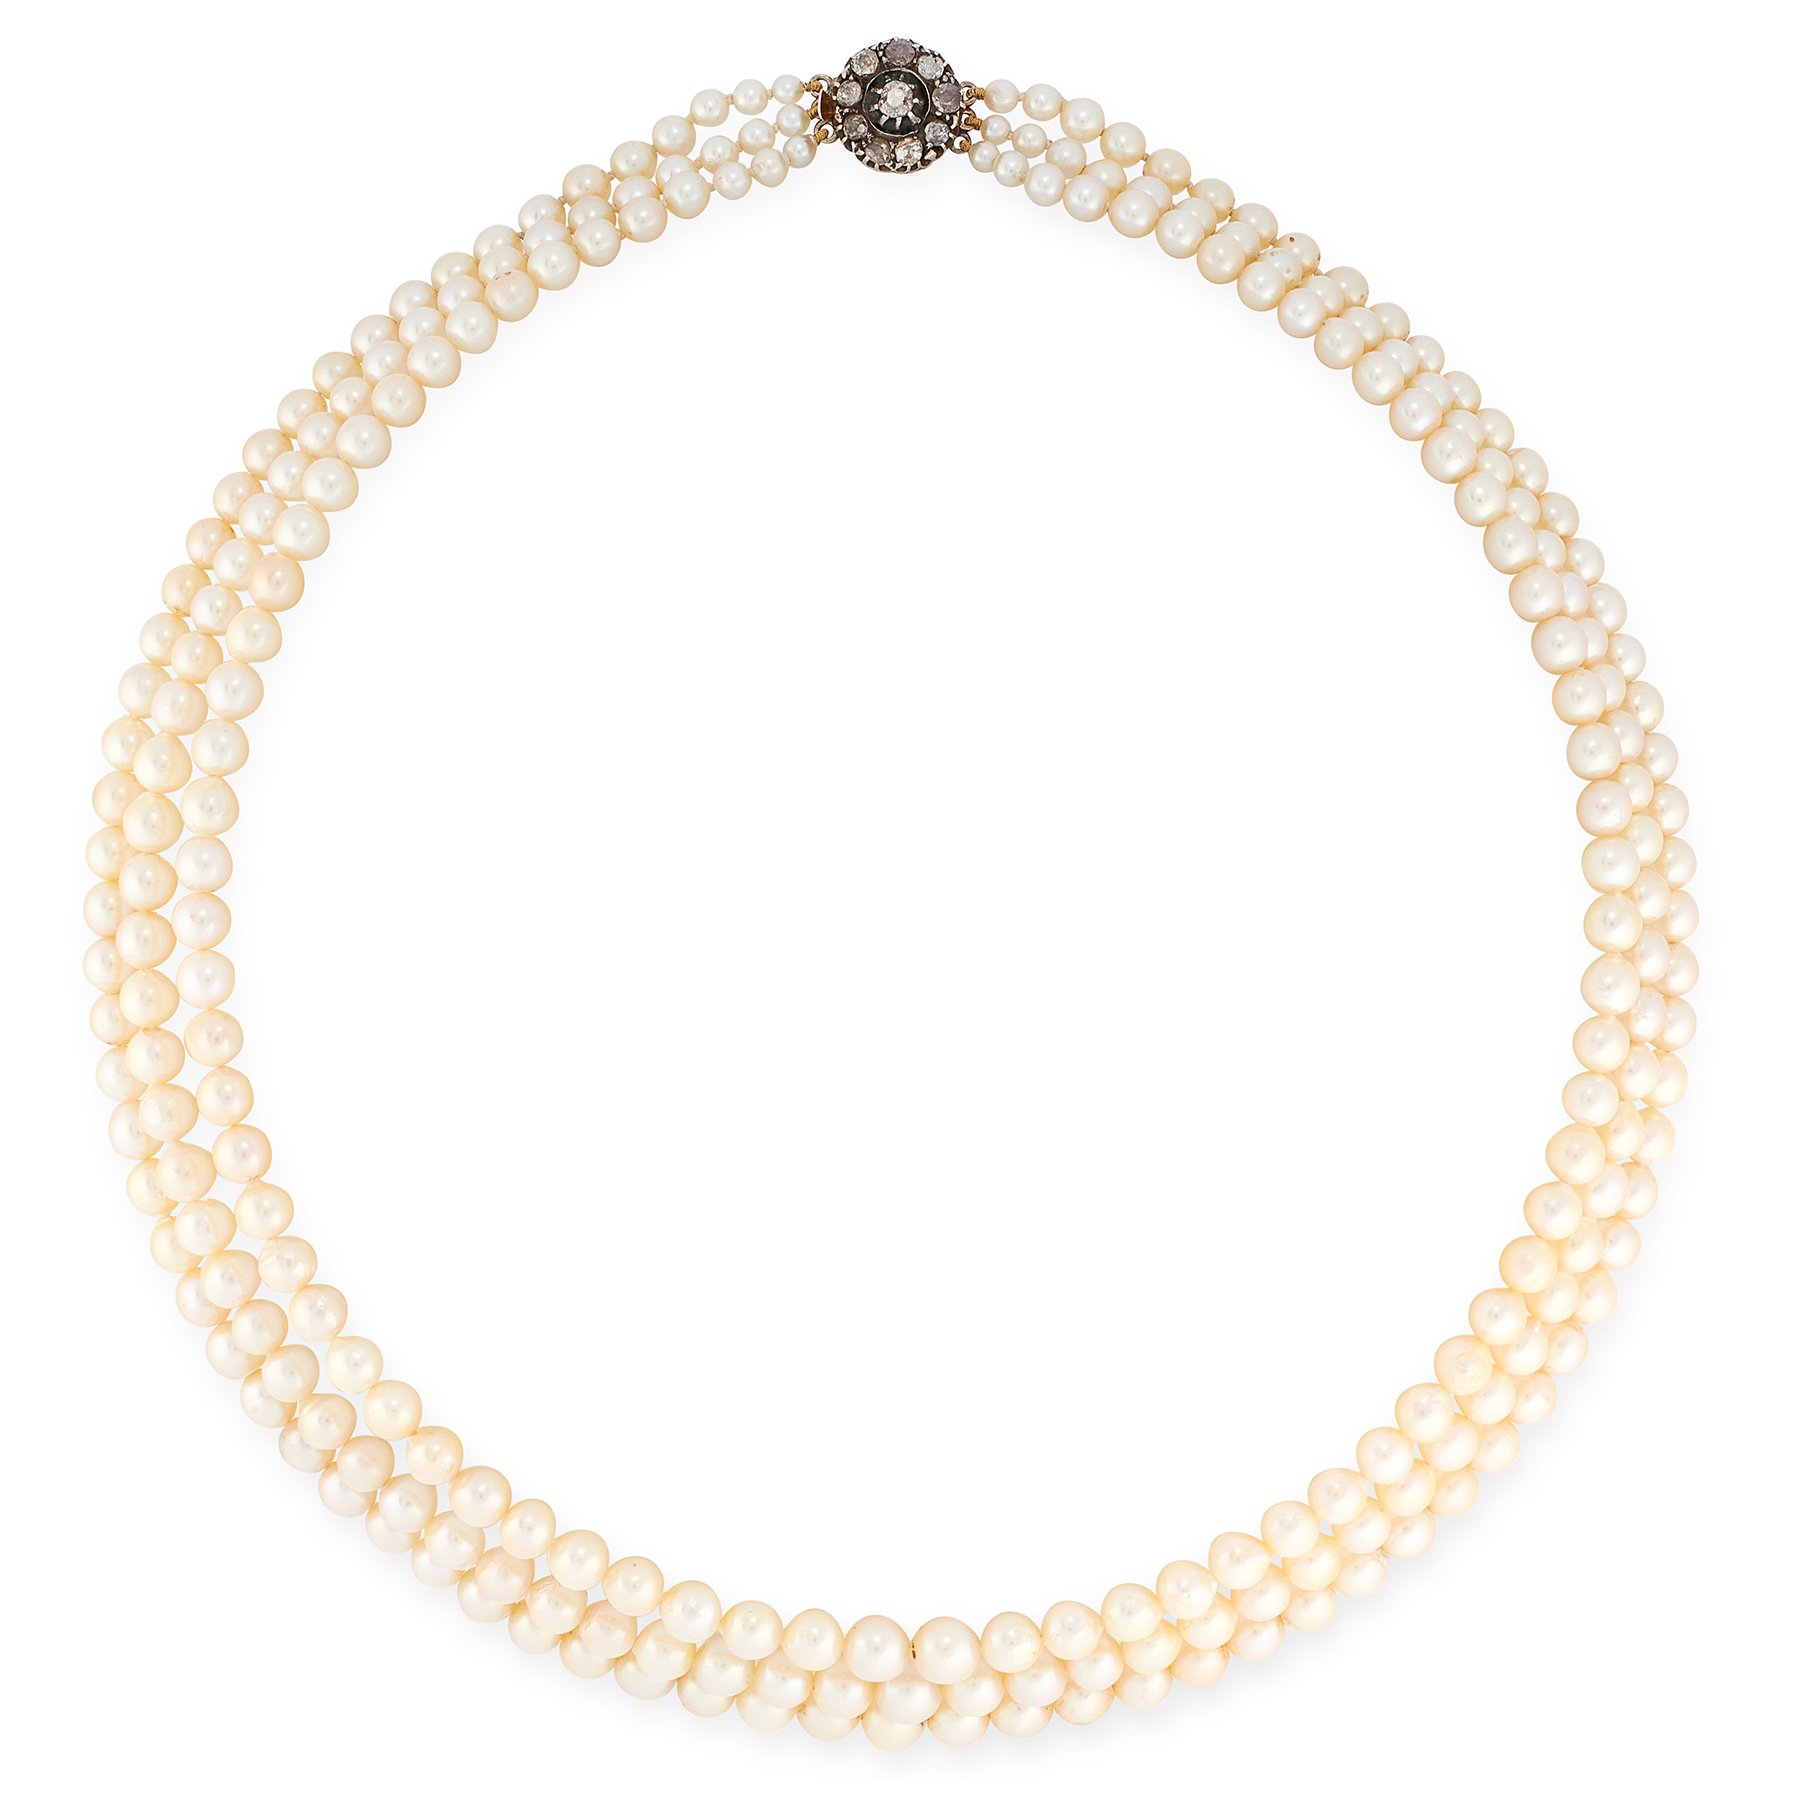 A THREE ROW PEARL AND DIAMOND NECKLACE in yellow gold, comprising three rows of graduated pearls